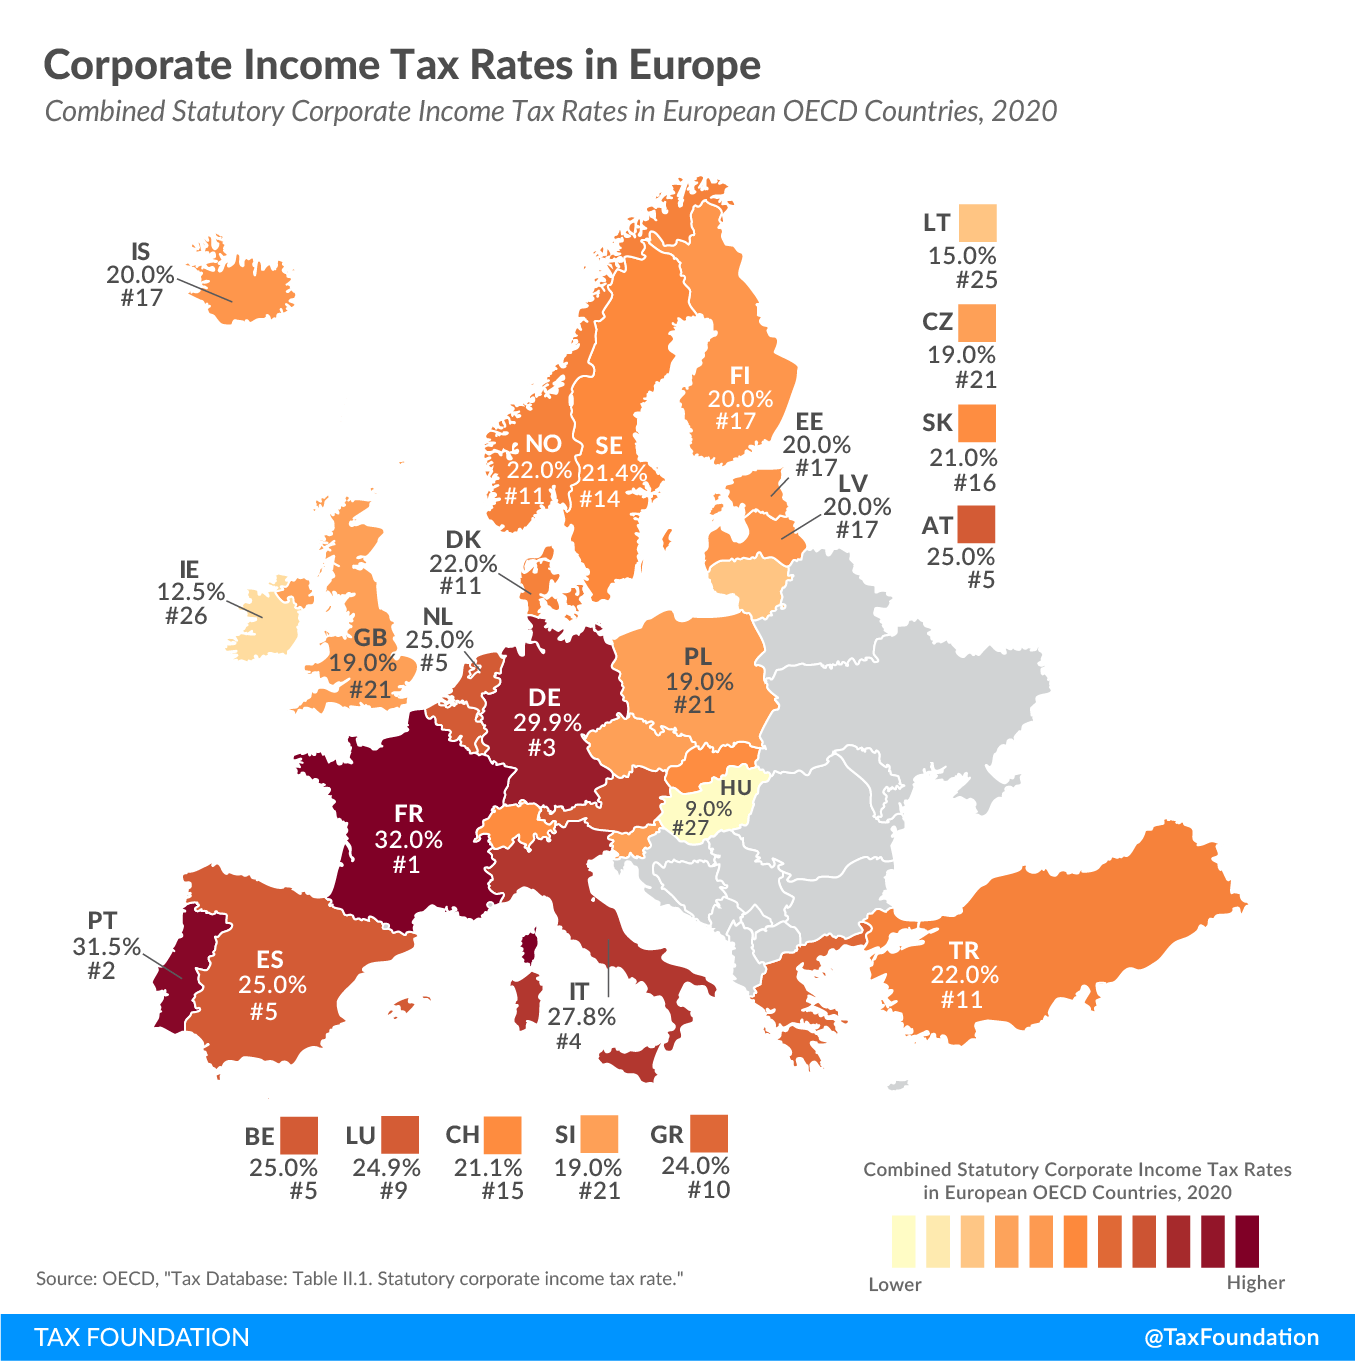 2020 corporate tax rates in Europe, 2020 corporate income tax rates in Europe, 2020 combined statutory corporate income tax rates in European OECD Countries